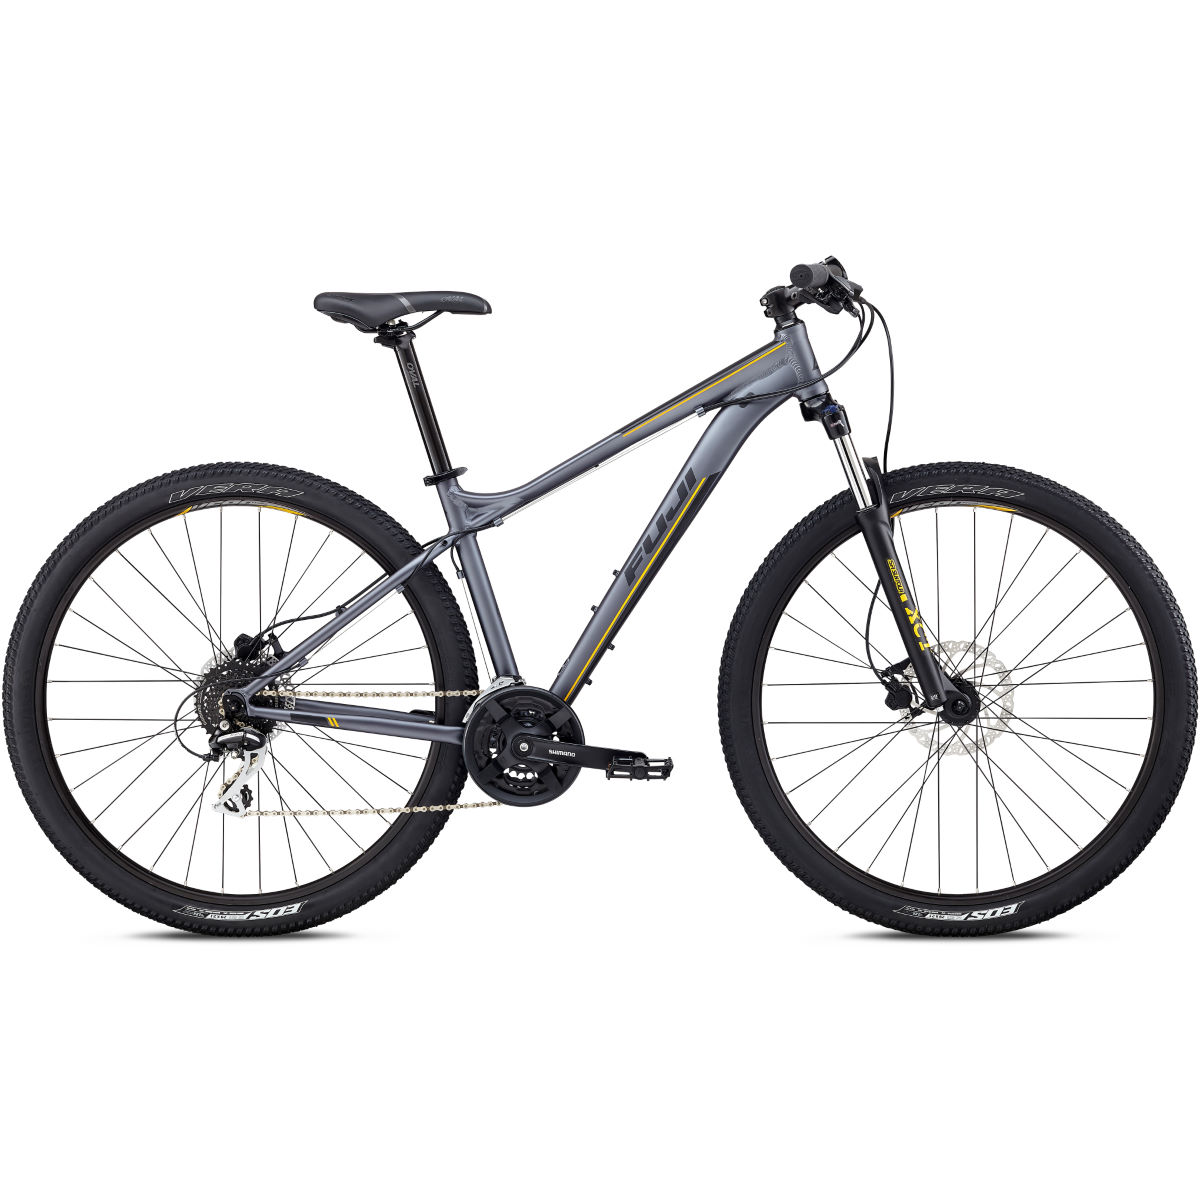 VTT semi-rigide Fuji Nevada 29 1.7 - 53cm(21'') Stock Bike